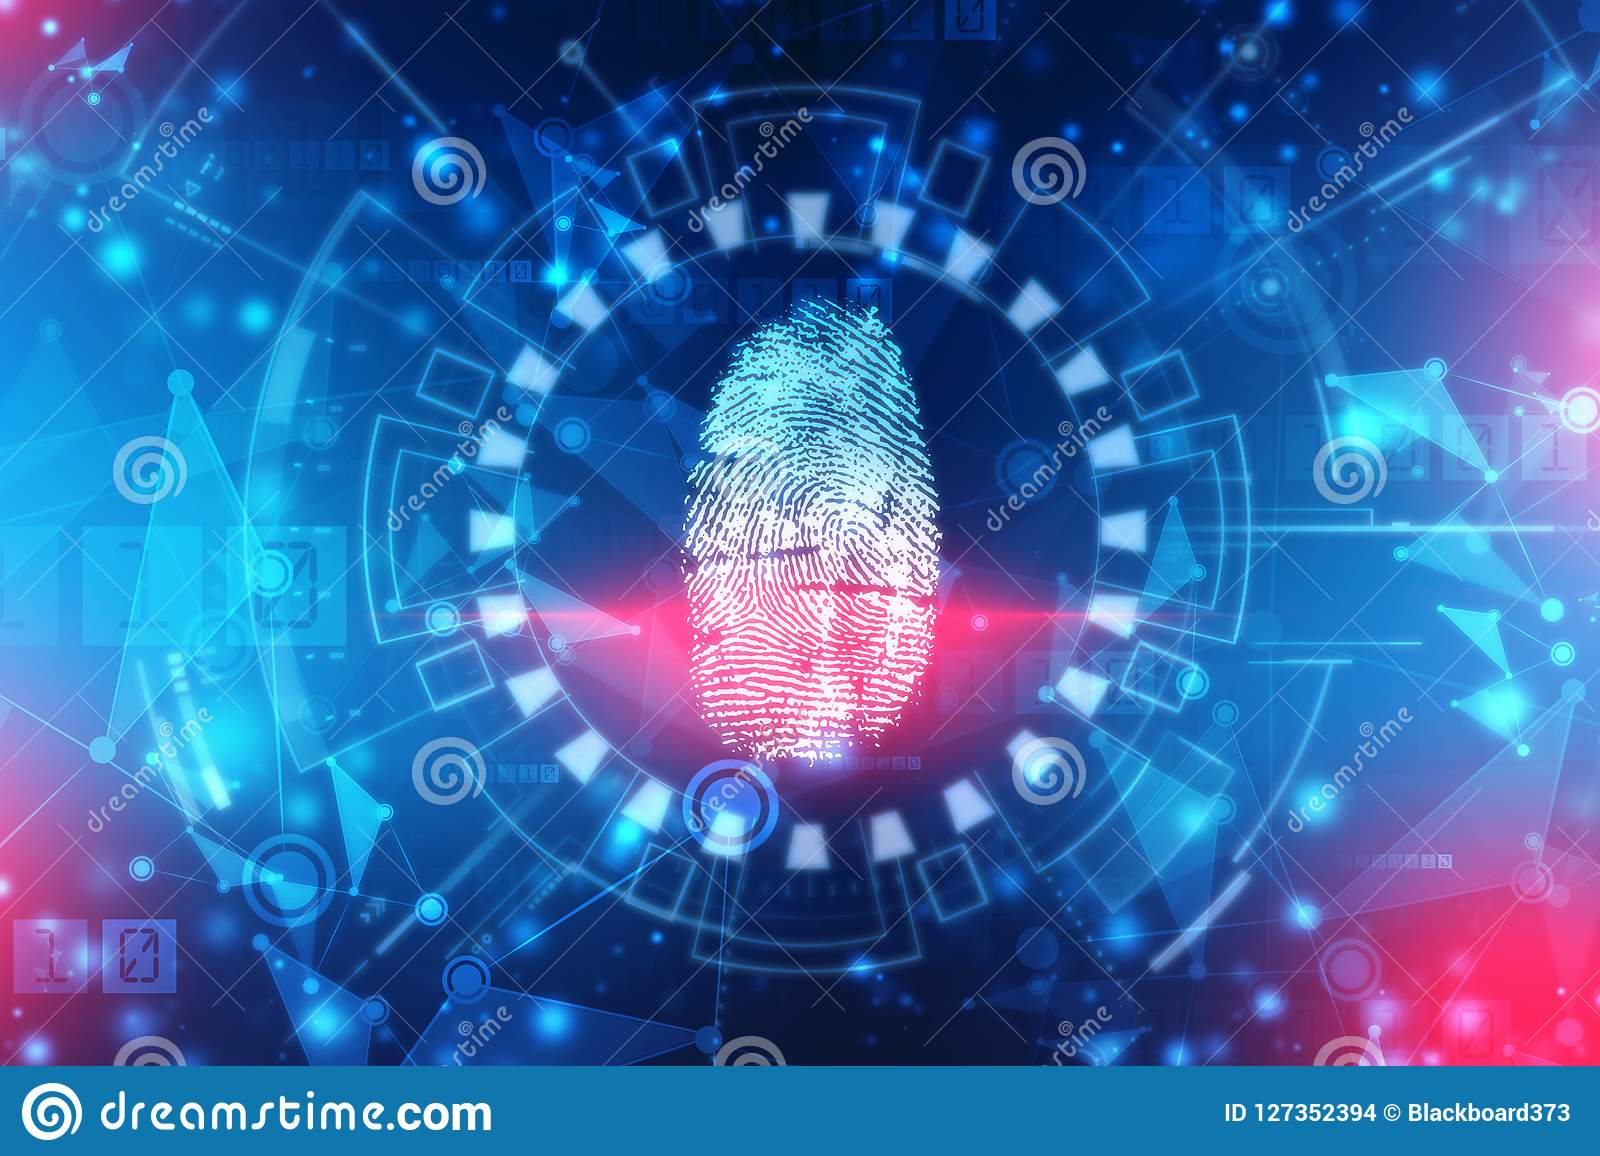 Finger print Scanning Identification System. Biometric Authorization and Business Security Concept